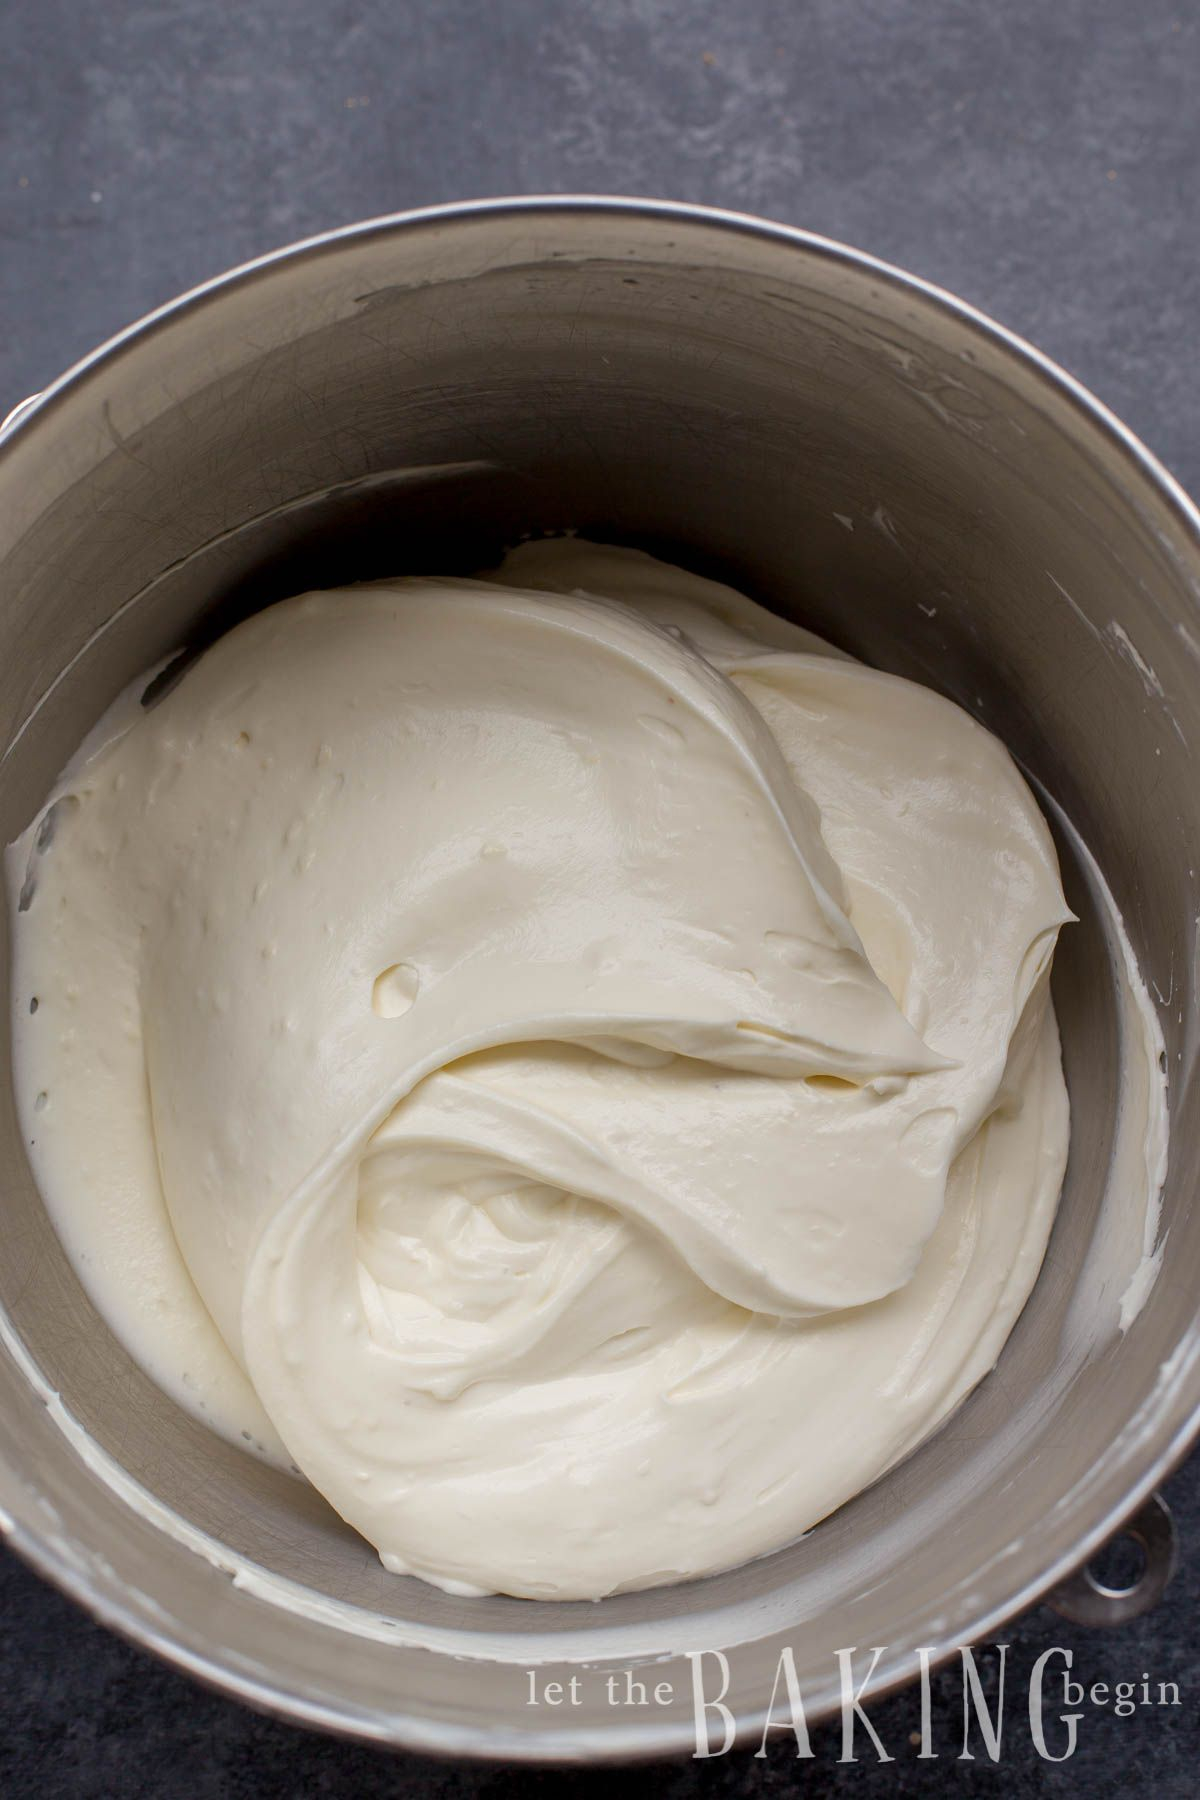 Sour Cream Frosting Fluffy And Creamy Frosting With A Tangy Sour Cream Flavor Will Work Sour Cream Frosting Homemade Sour Cream Sour Cream Chocolate Frosting